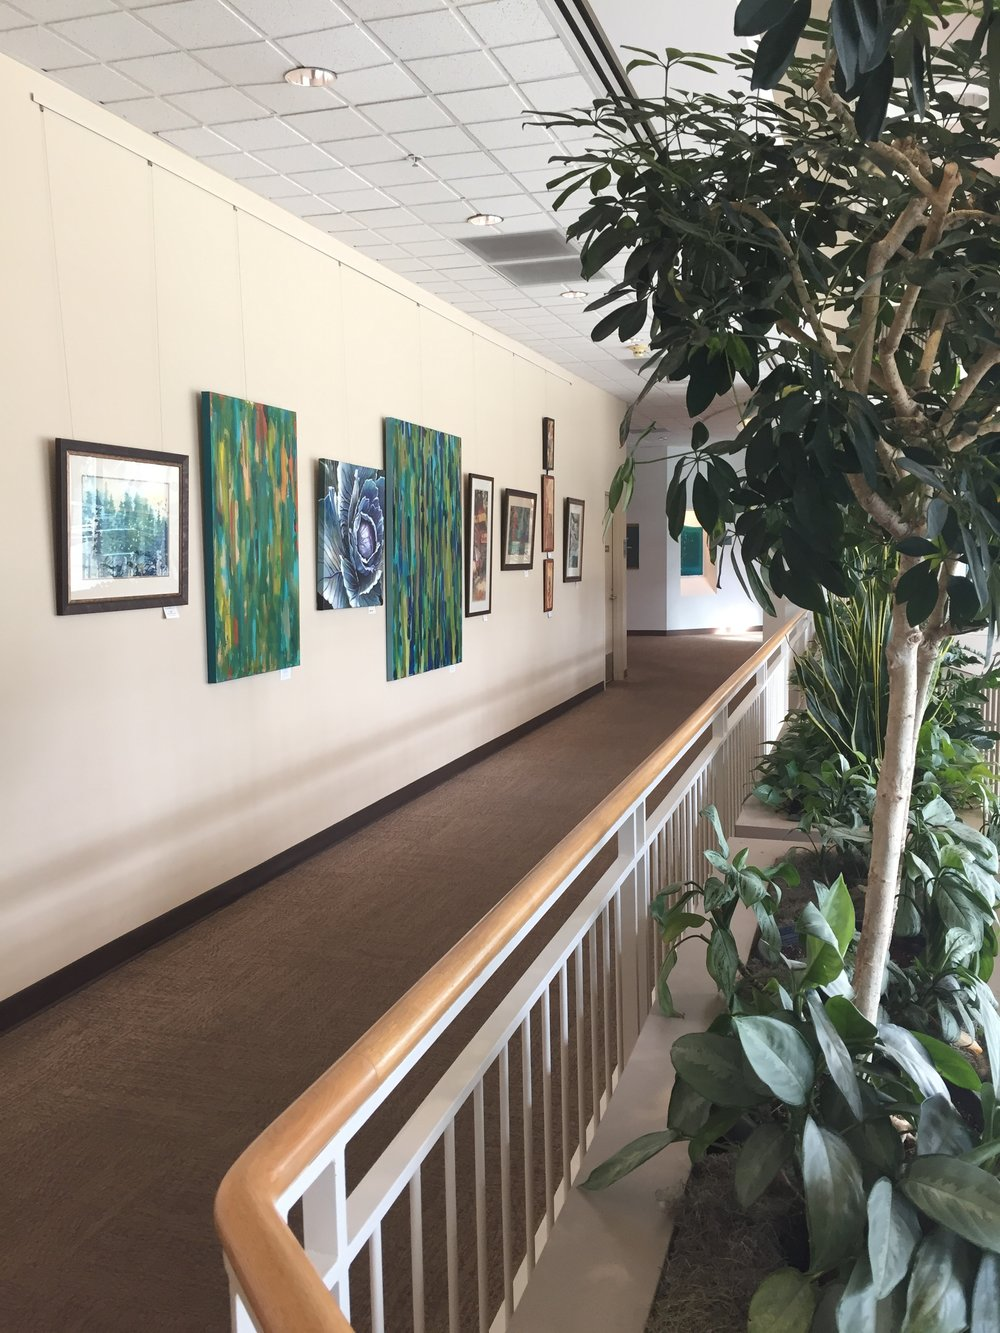 HDAL group show up at St. Charles Bend Hospital for October - December 2016